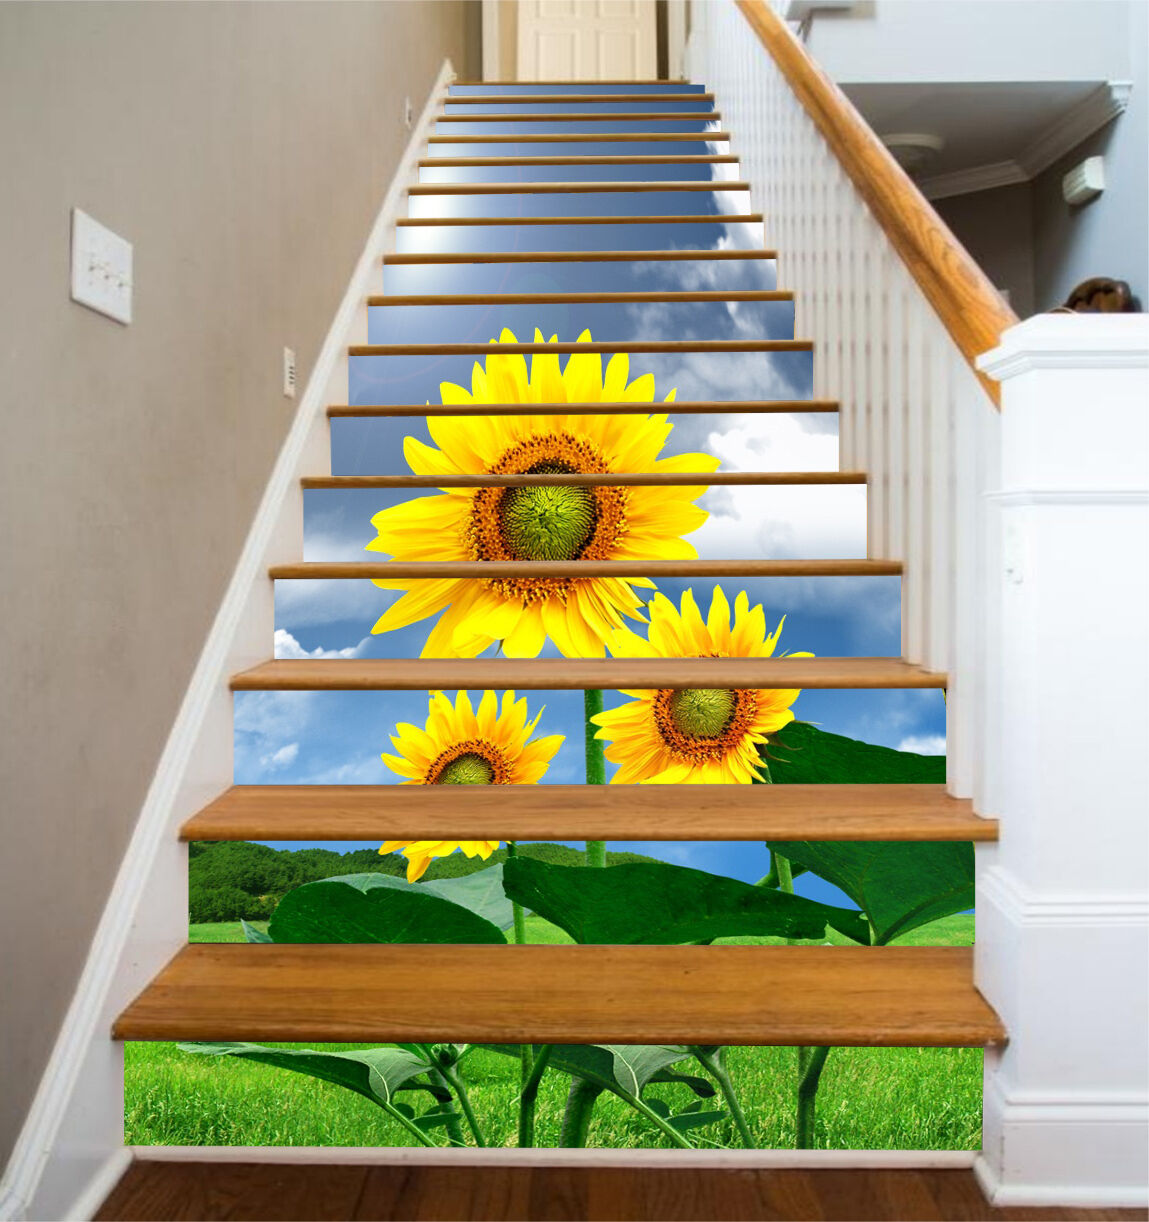 3D Lawn Sunflowers Stair Risers Decoration Photo Mural Vinyl Decal WandPapier AU